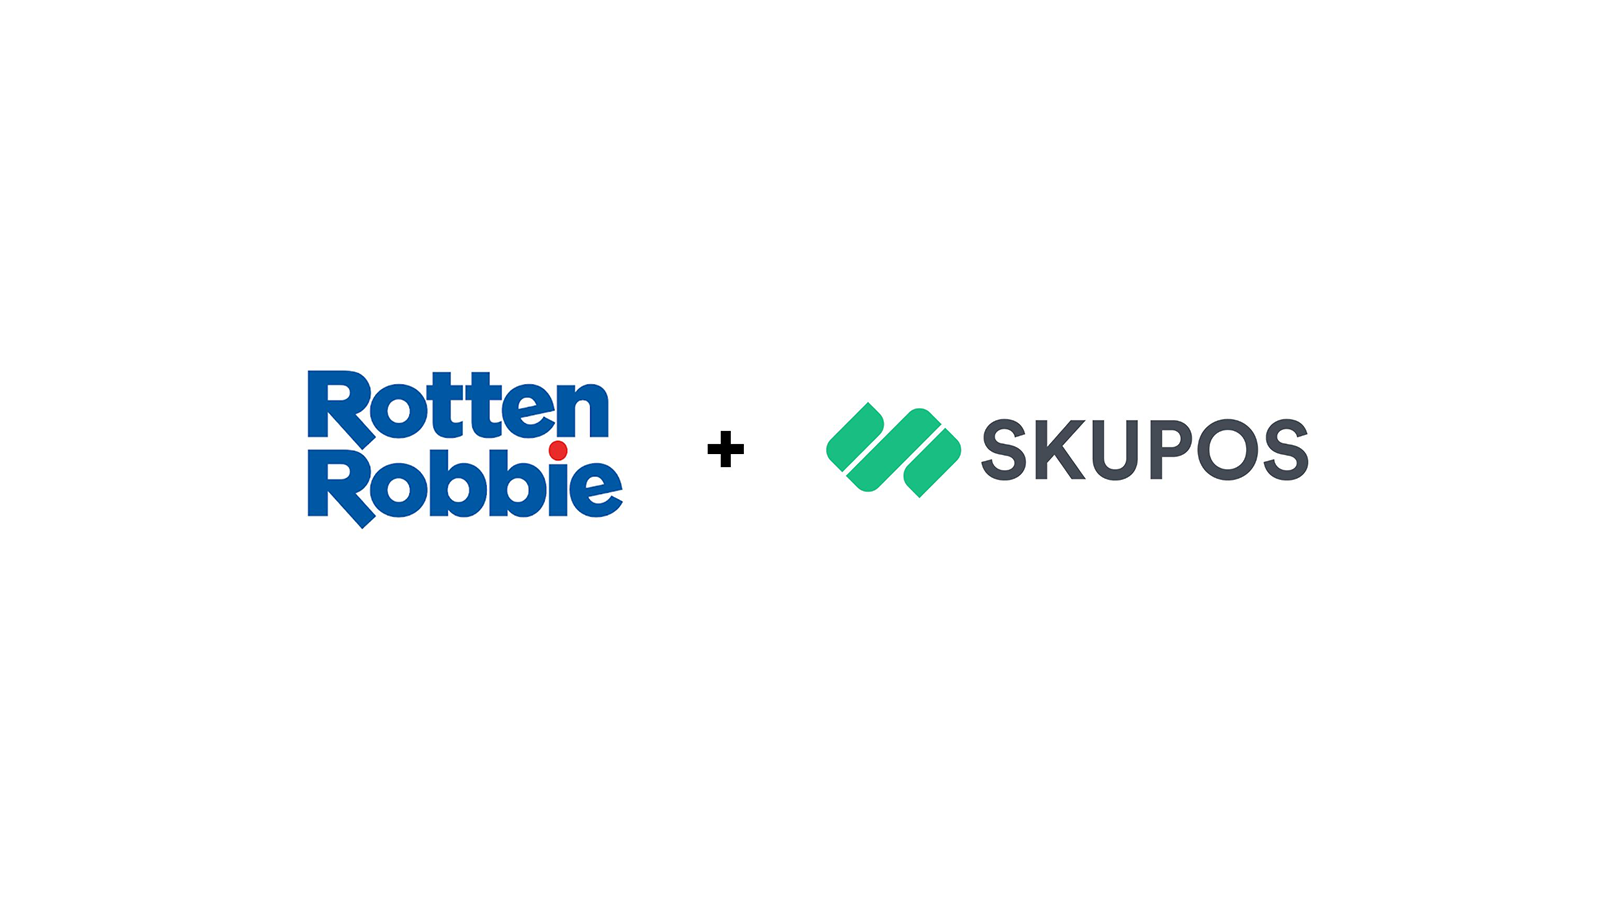 Rotten Robbie Switches To Skupos, Inc. For Scan Data Analytics Services